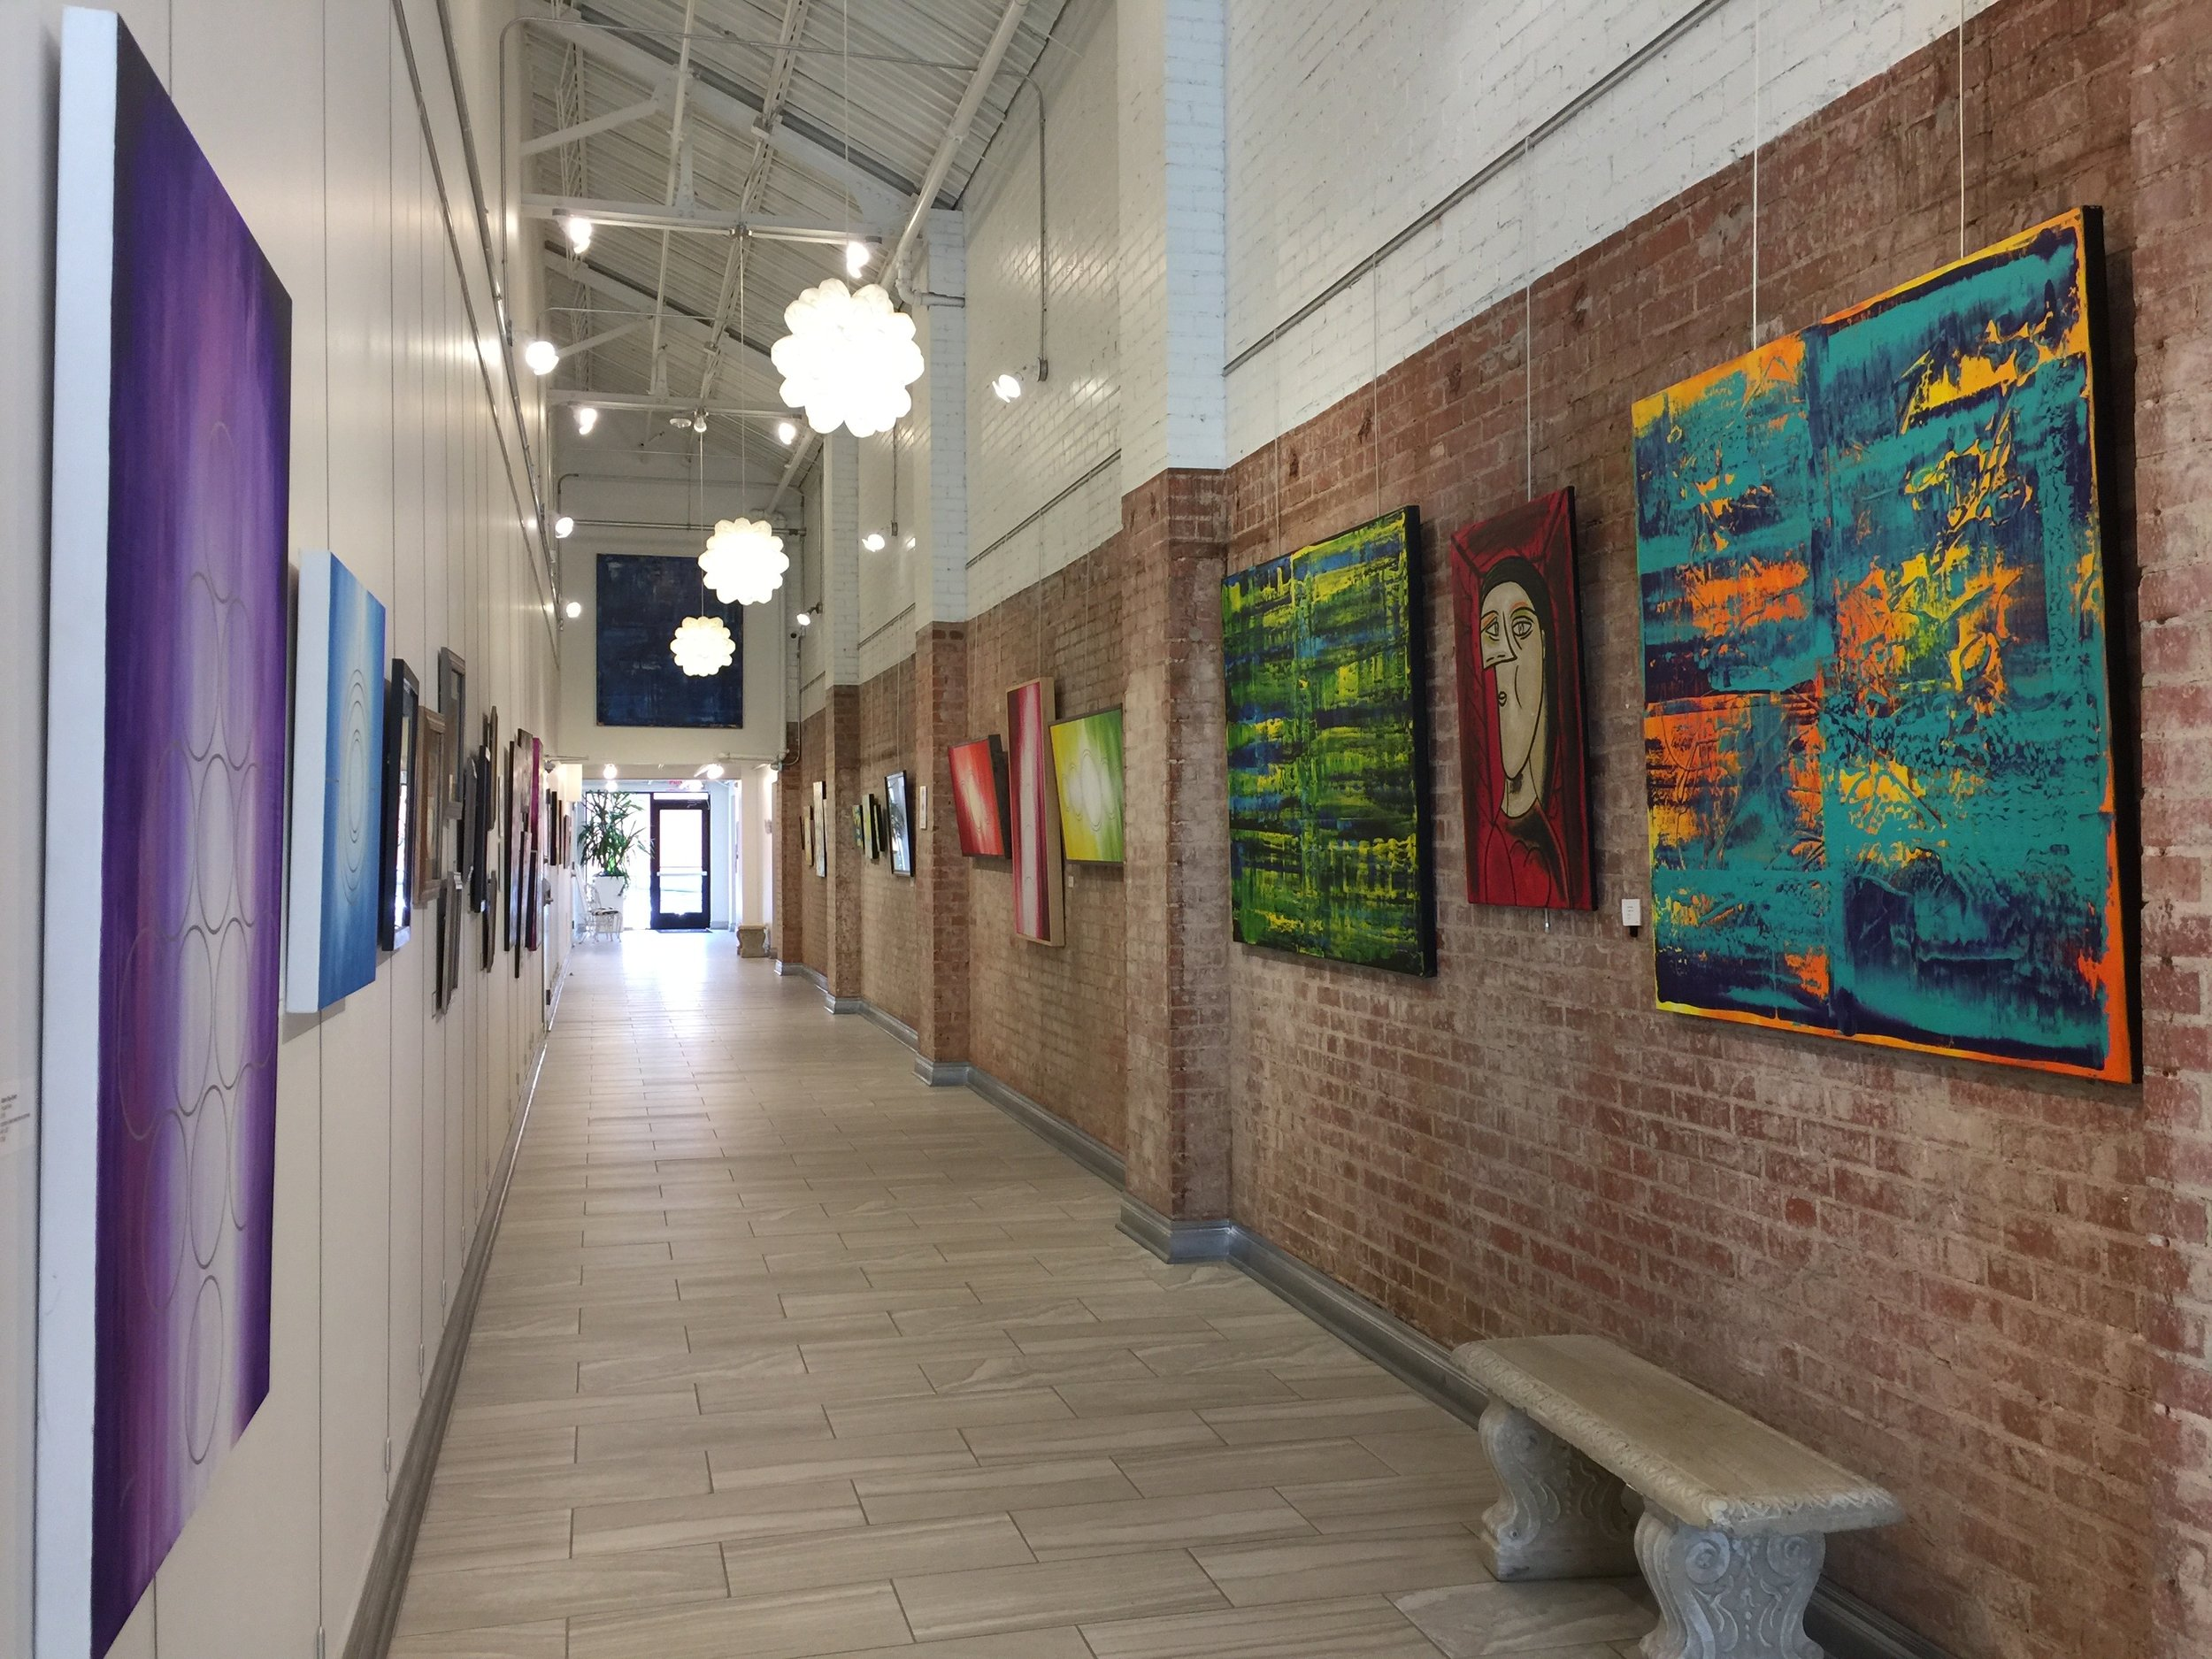 Installation view, featuring Sean Giboney on East wall